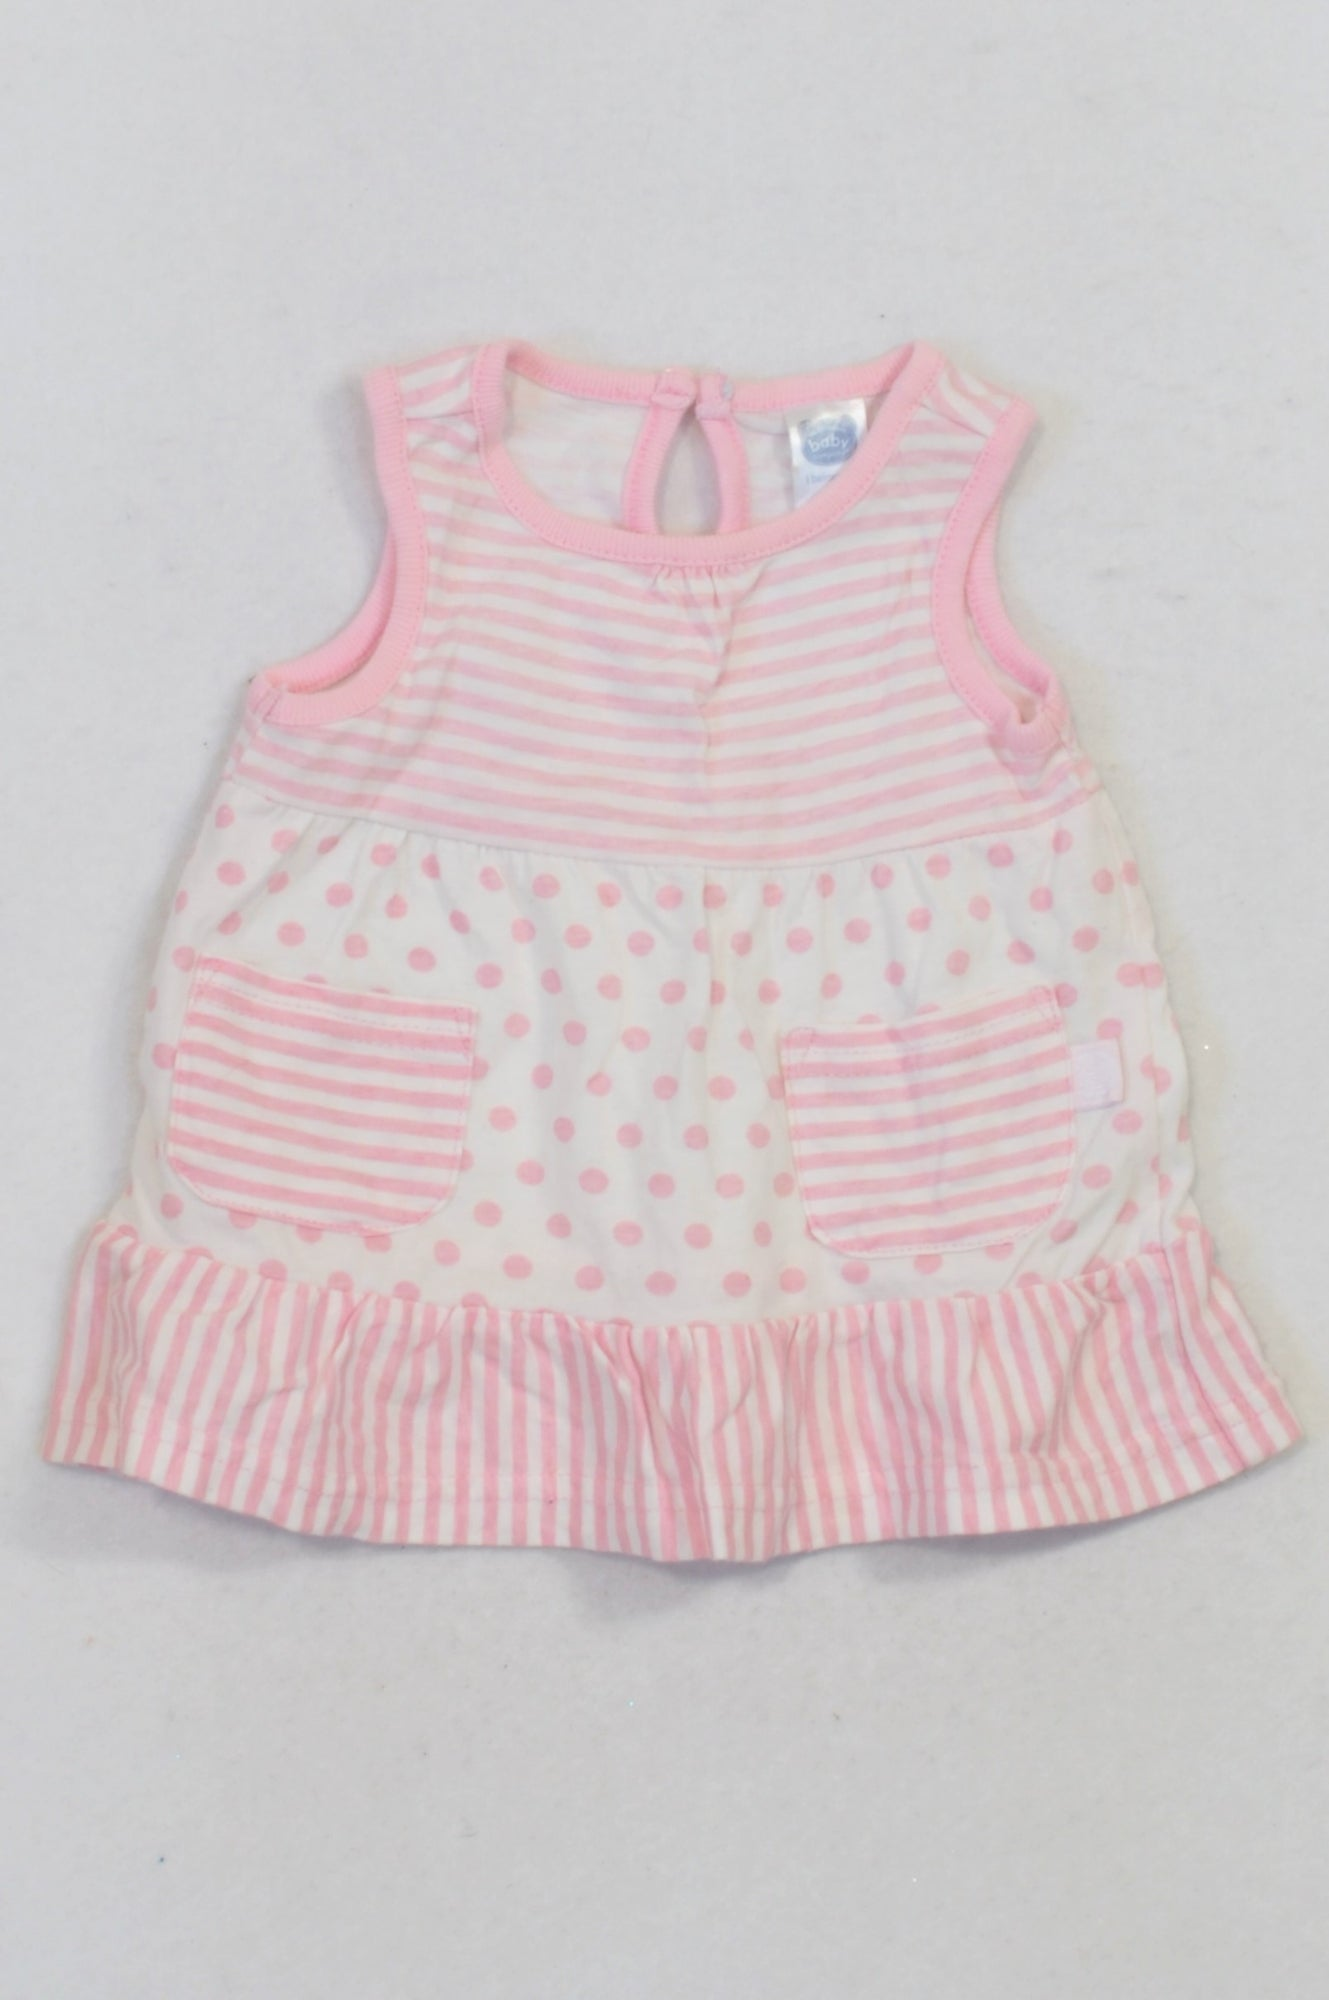 Ackermans Pink & White Striped & Dotty Dress Girls 0-3 months